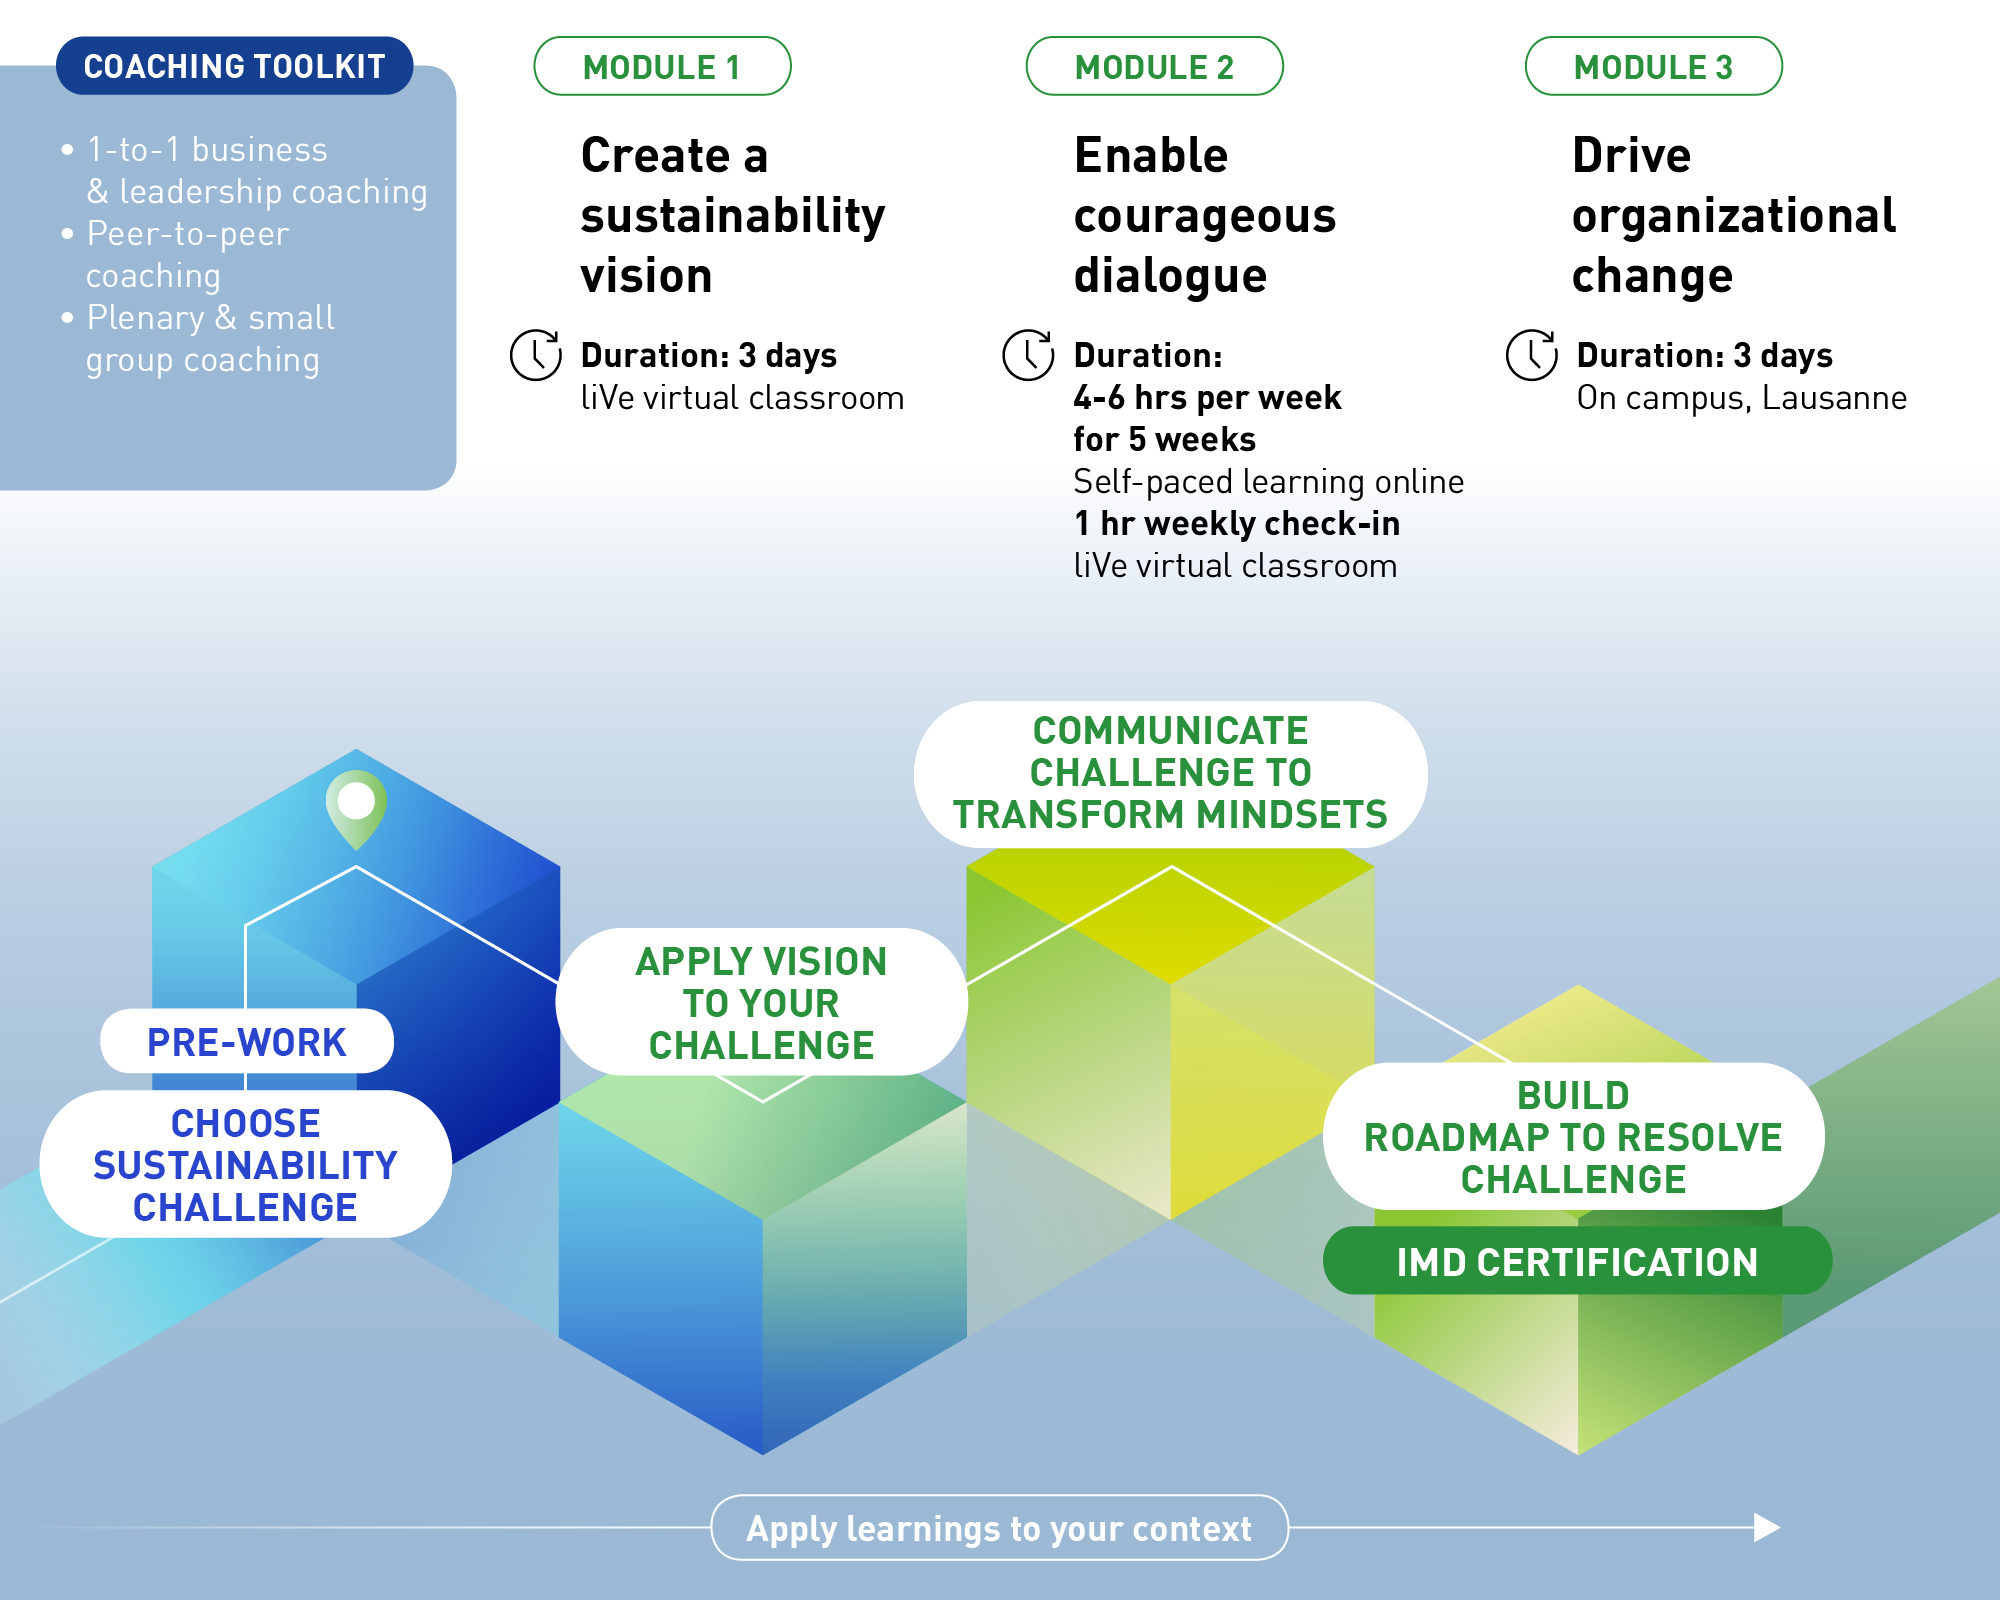 Leading sustainable business transformation